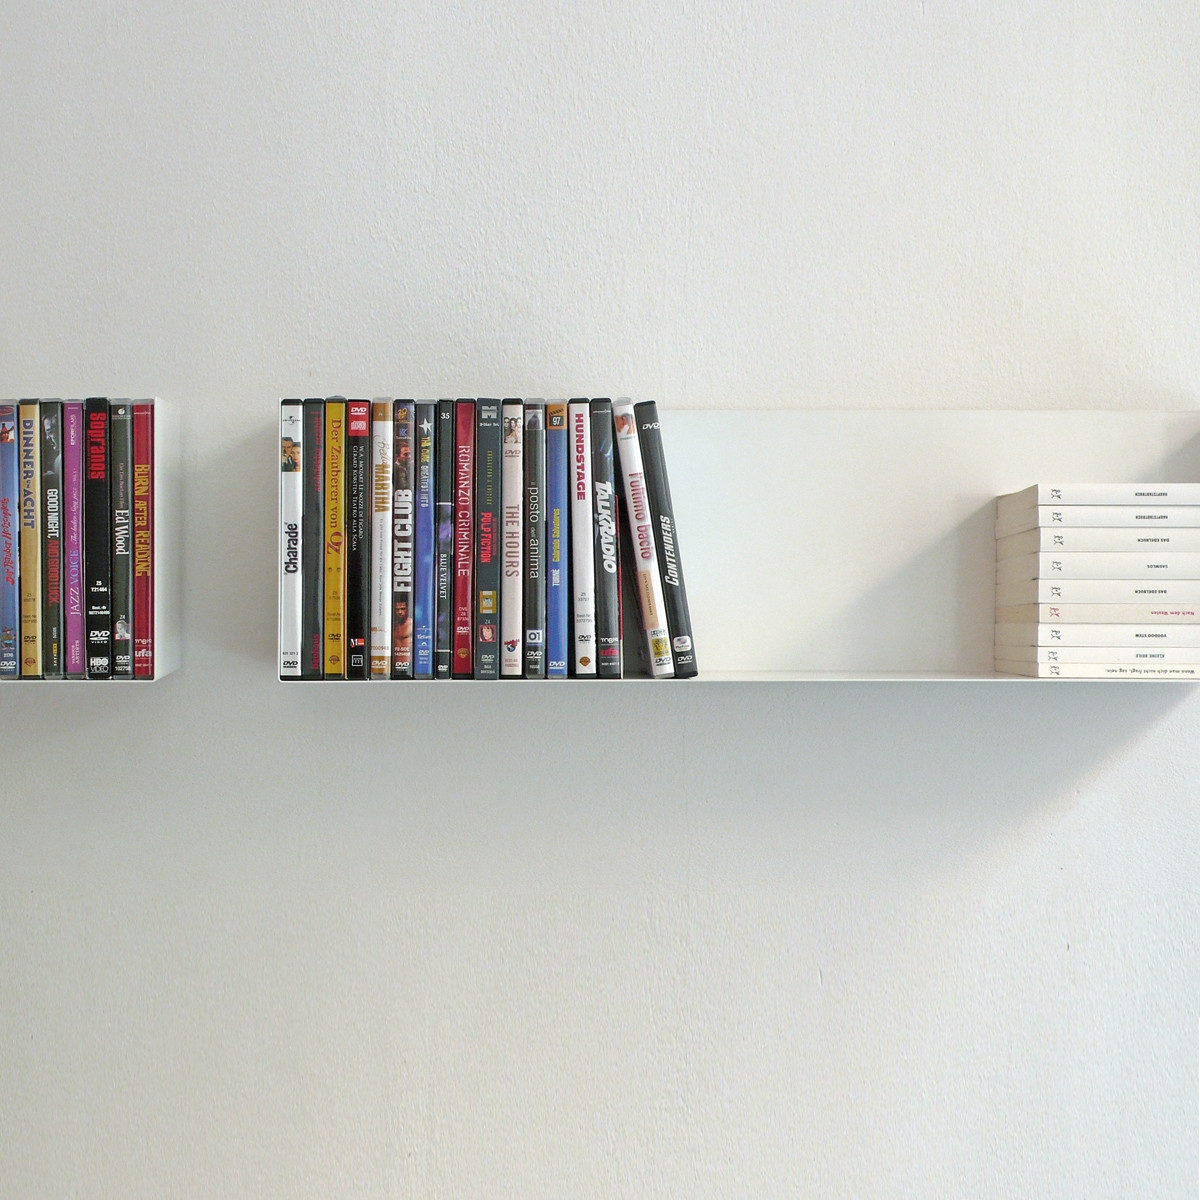 Linea1 A Paperback And Dvd Shelf In The Shop Within Invisible Dvd Shelf (#12 of 12)